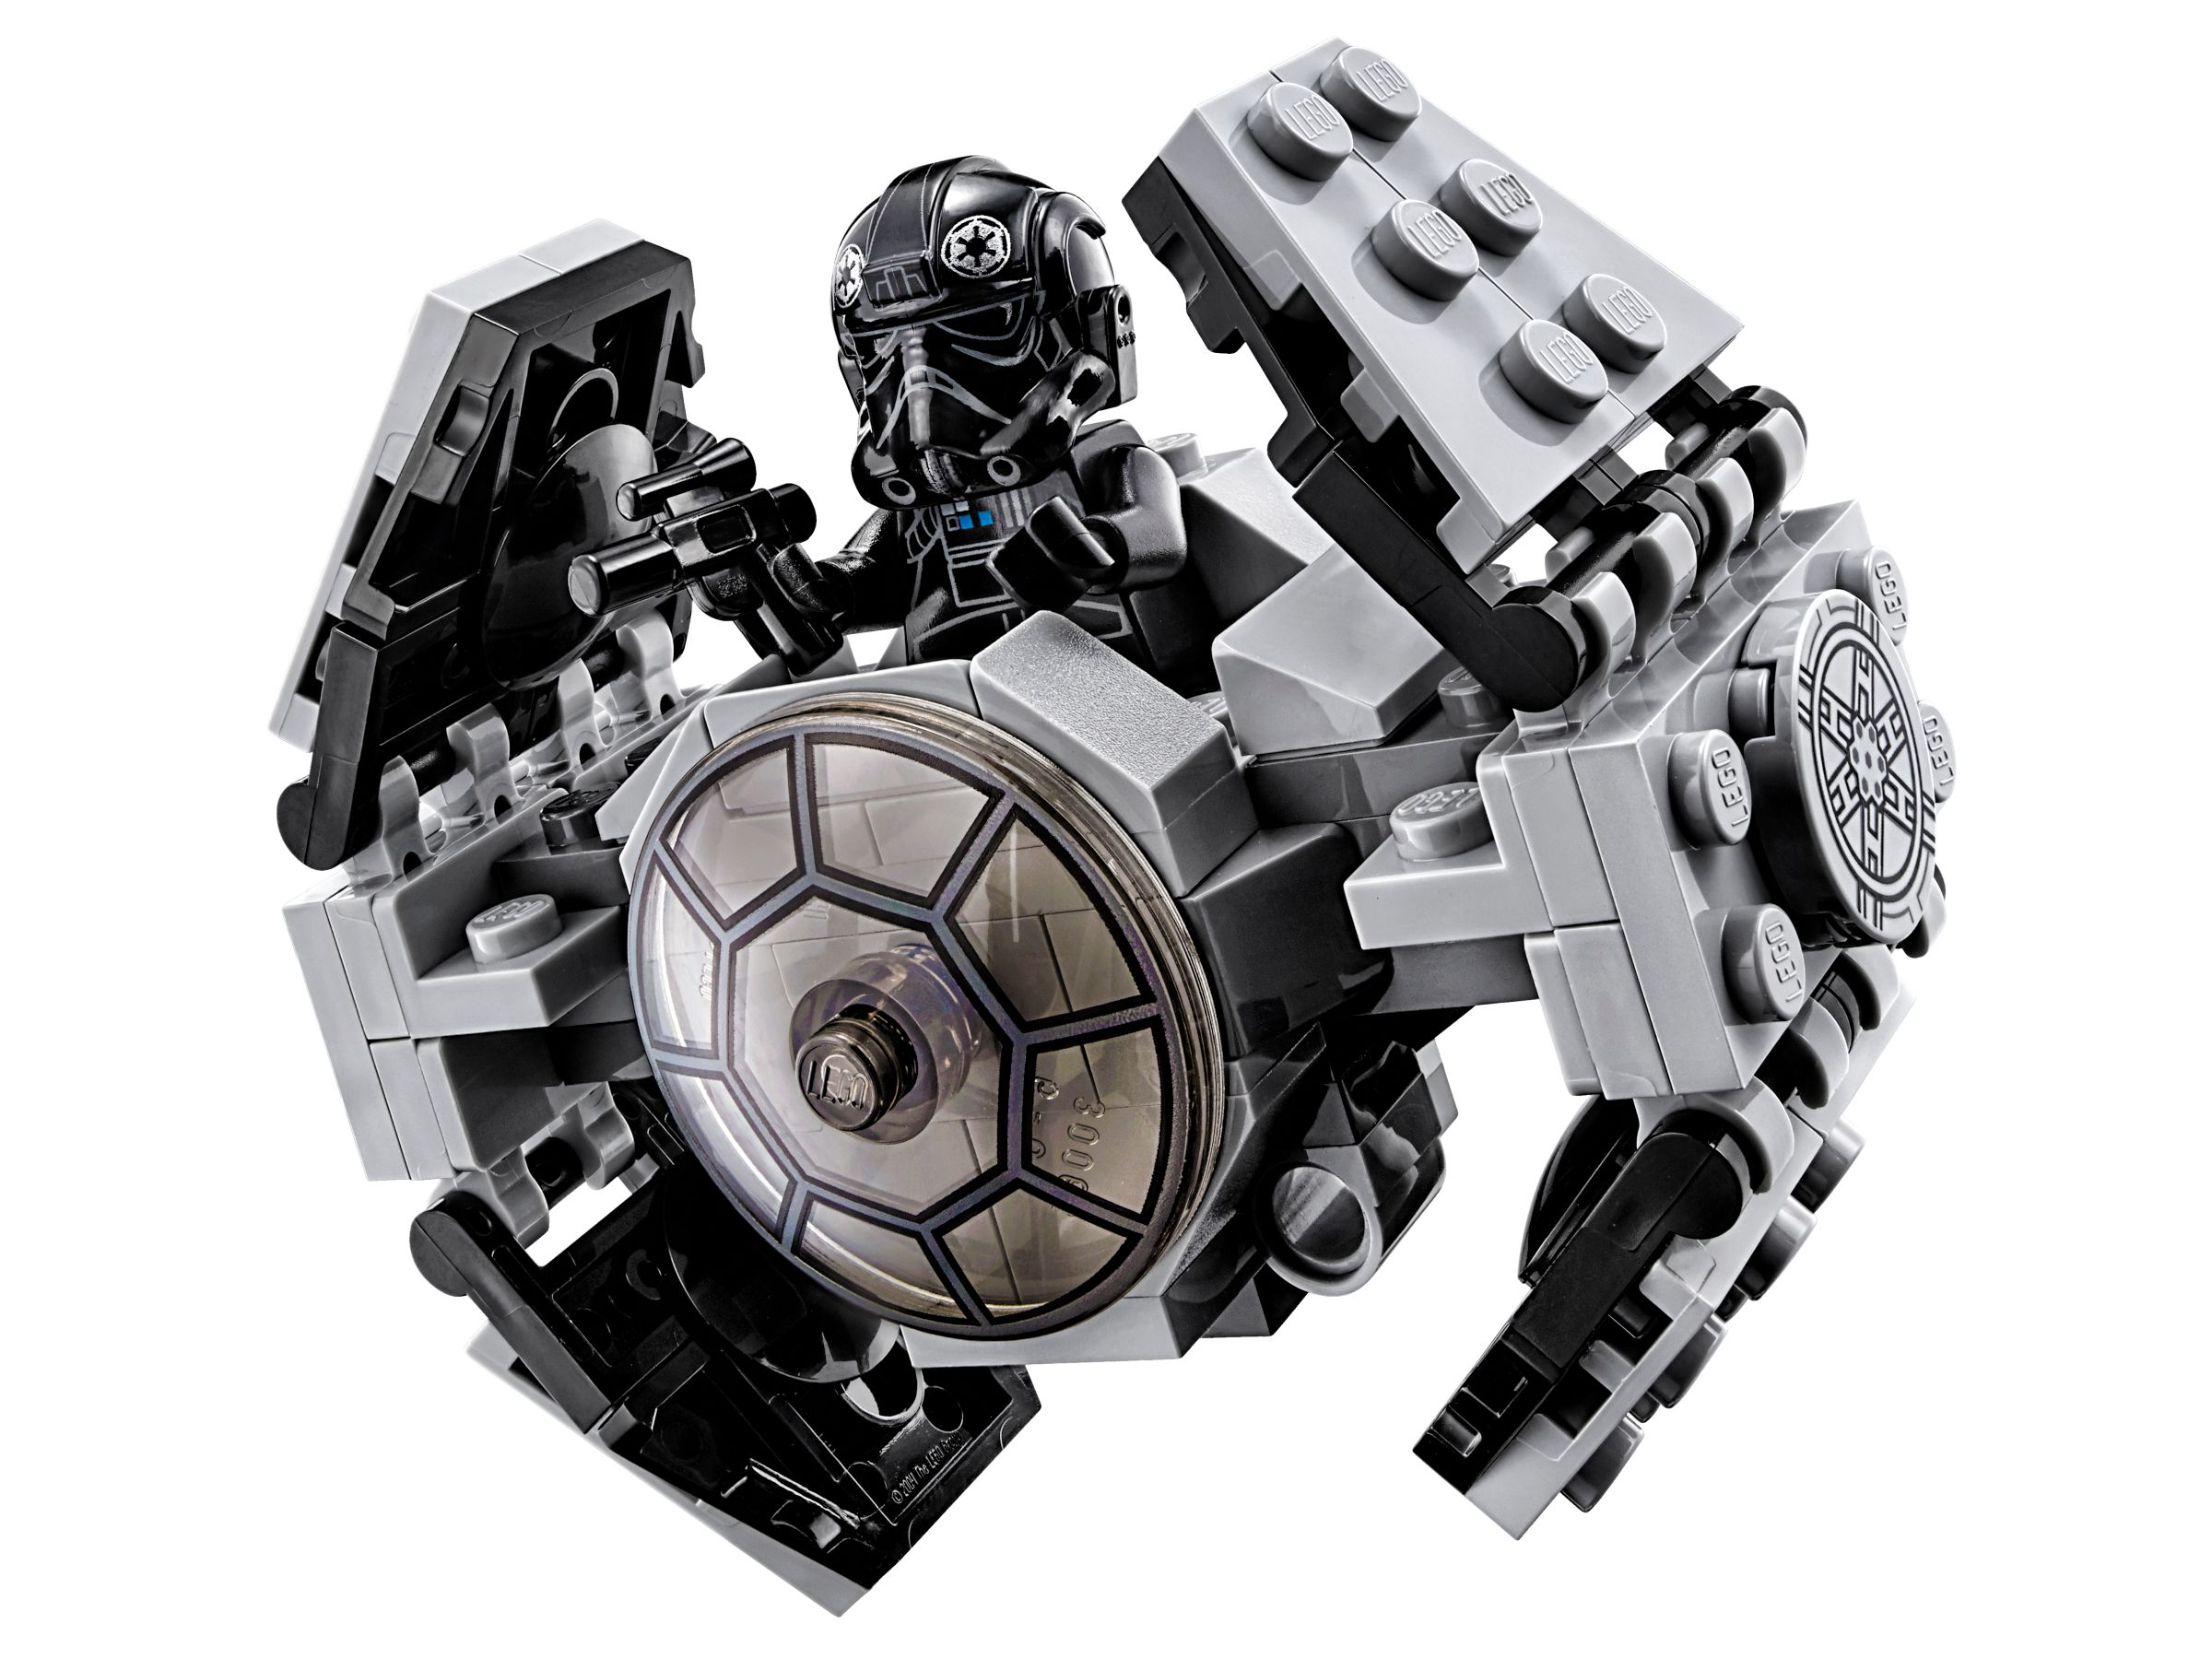 LEGO Star Wars 75128 TIE Advanced Prototype™ LEGO_75128_alt2.jpg